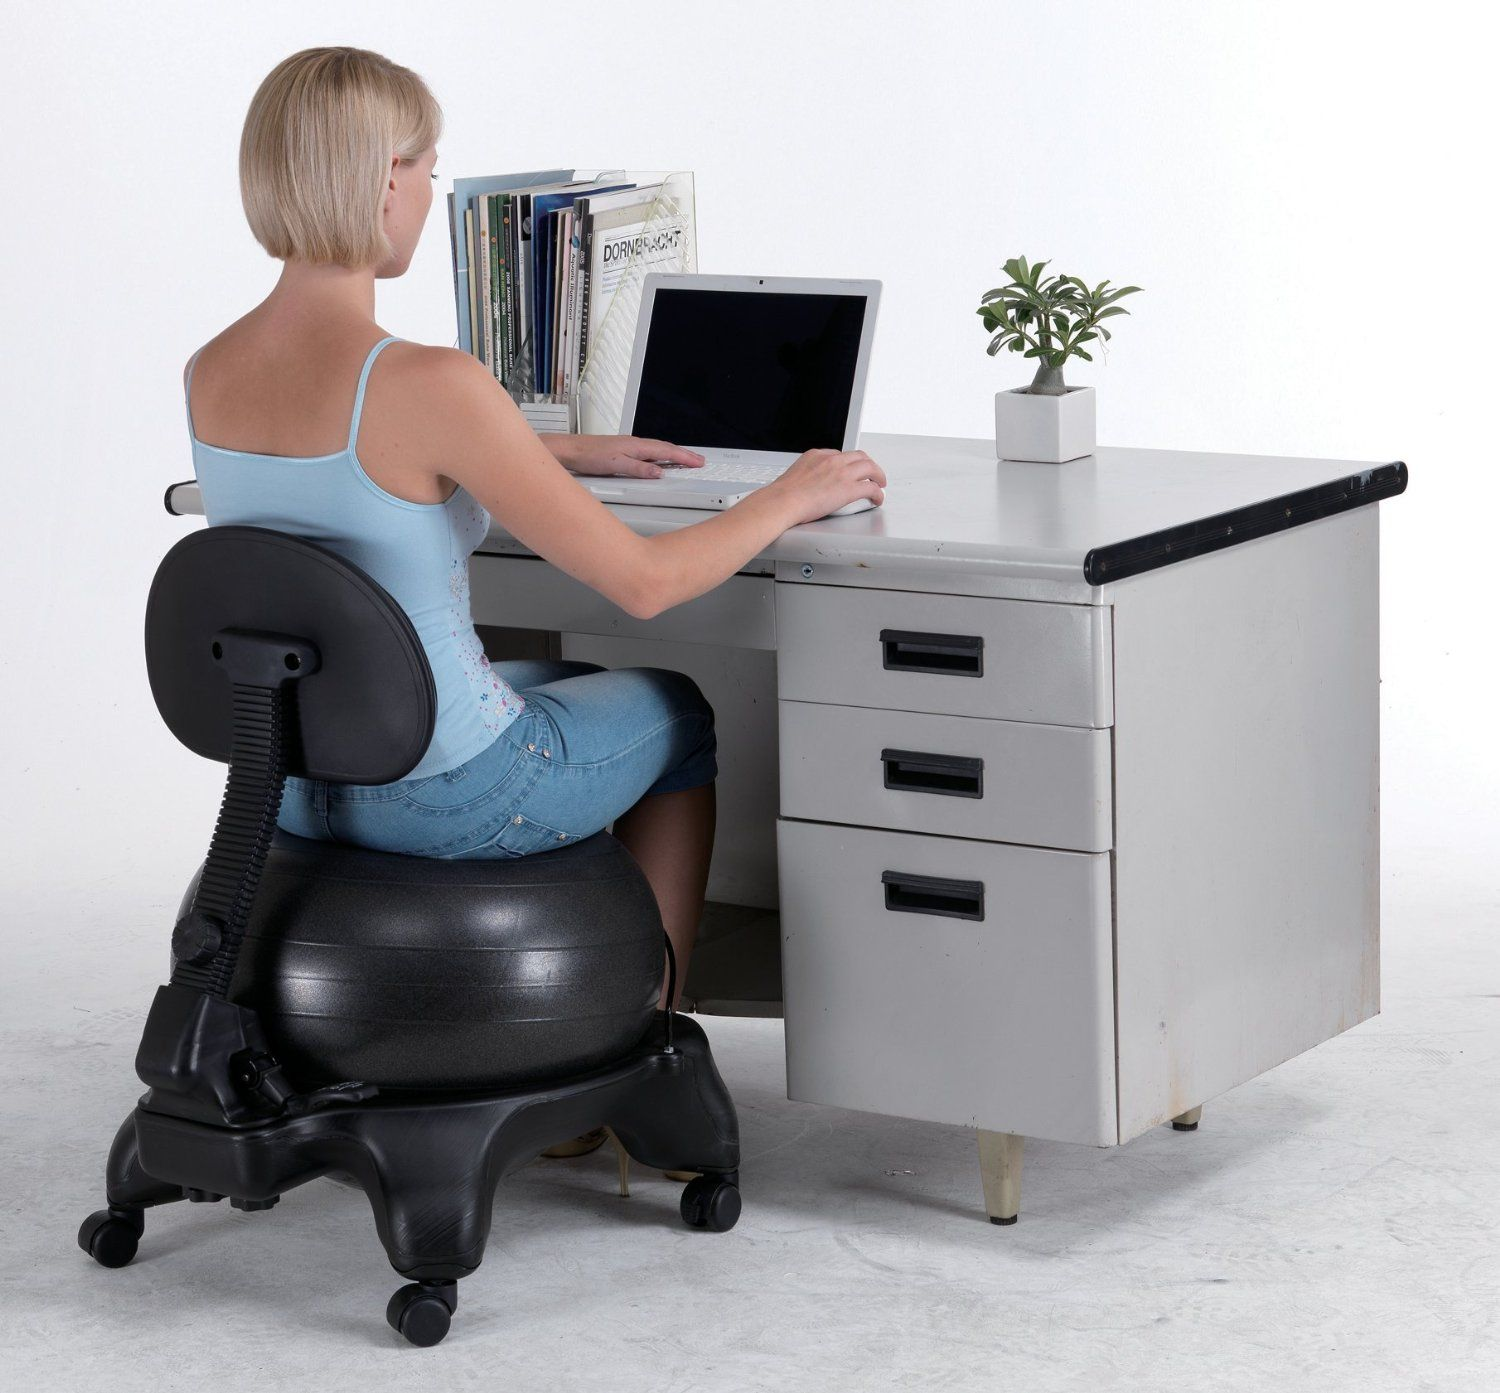 exercise ball office chair size swivel bath yoga chairs balance for stability guide and review